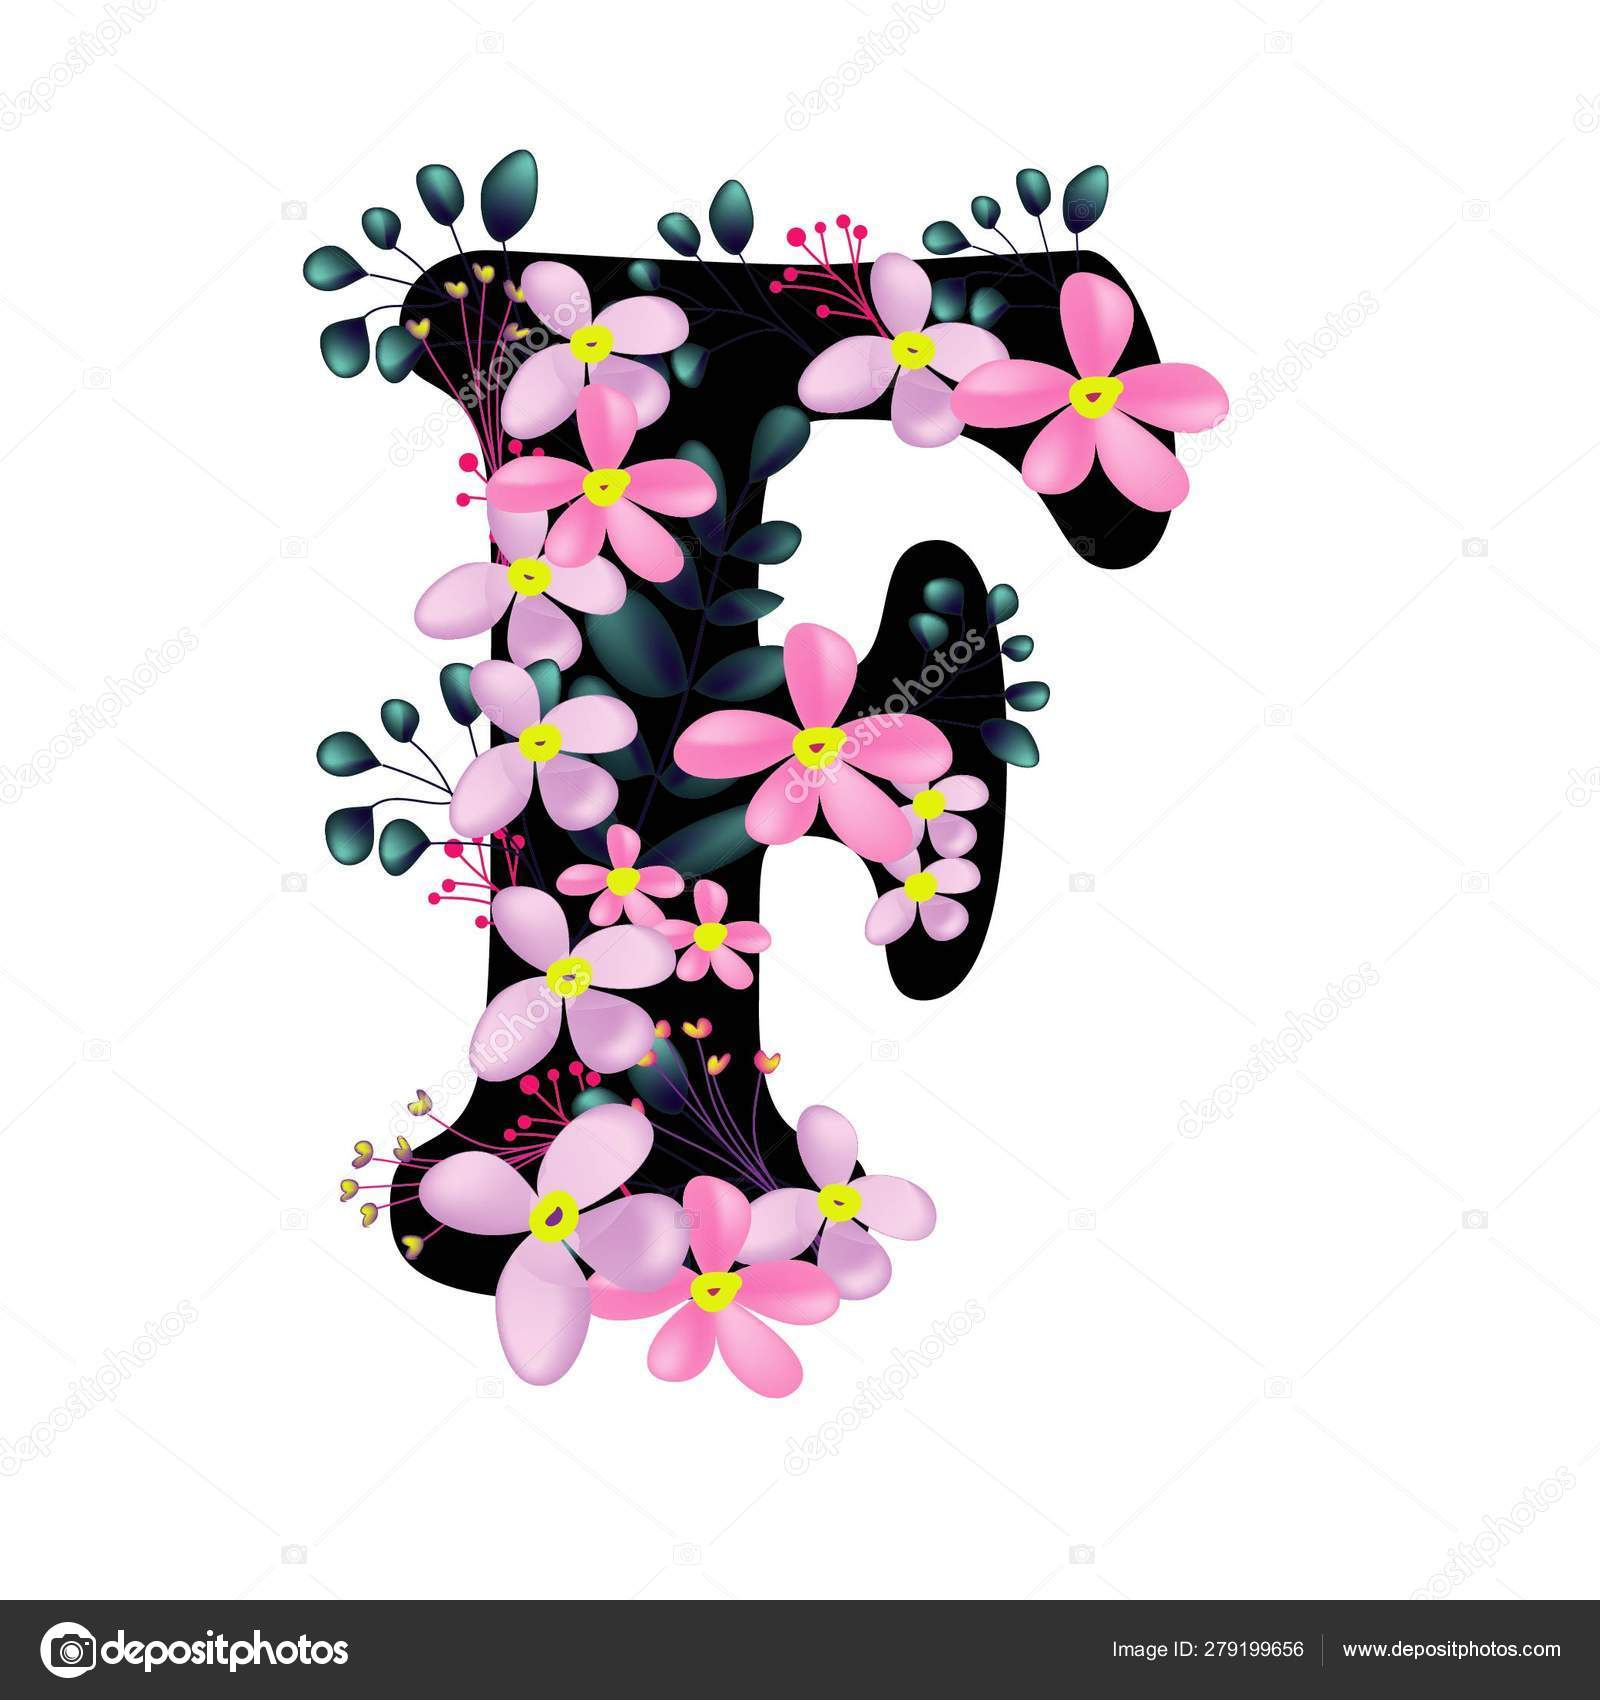 Beautiful Floral Letter Pink Flowers Flat Icon Isolated White Background Stock Vector C Elsabenaa 279199656